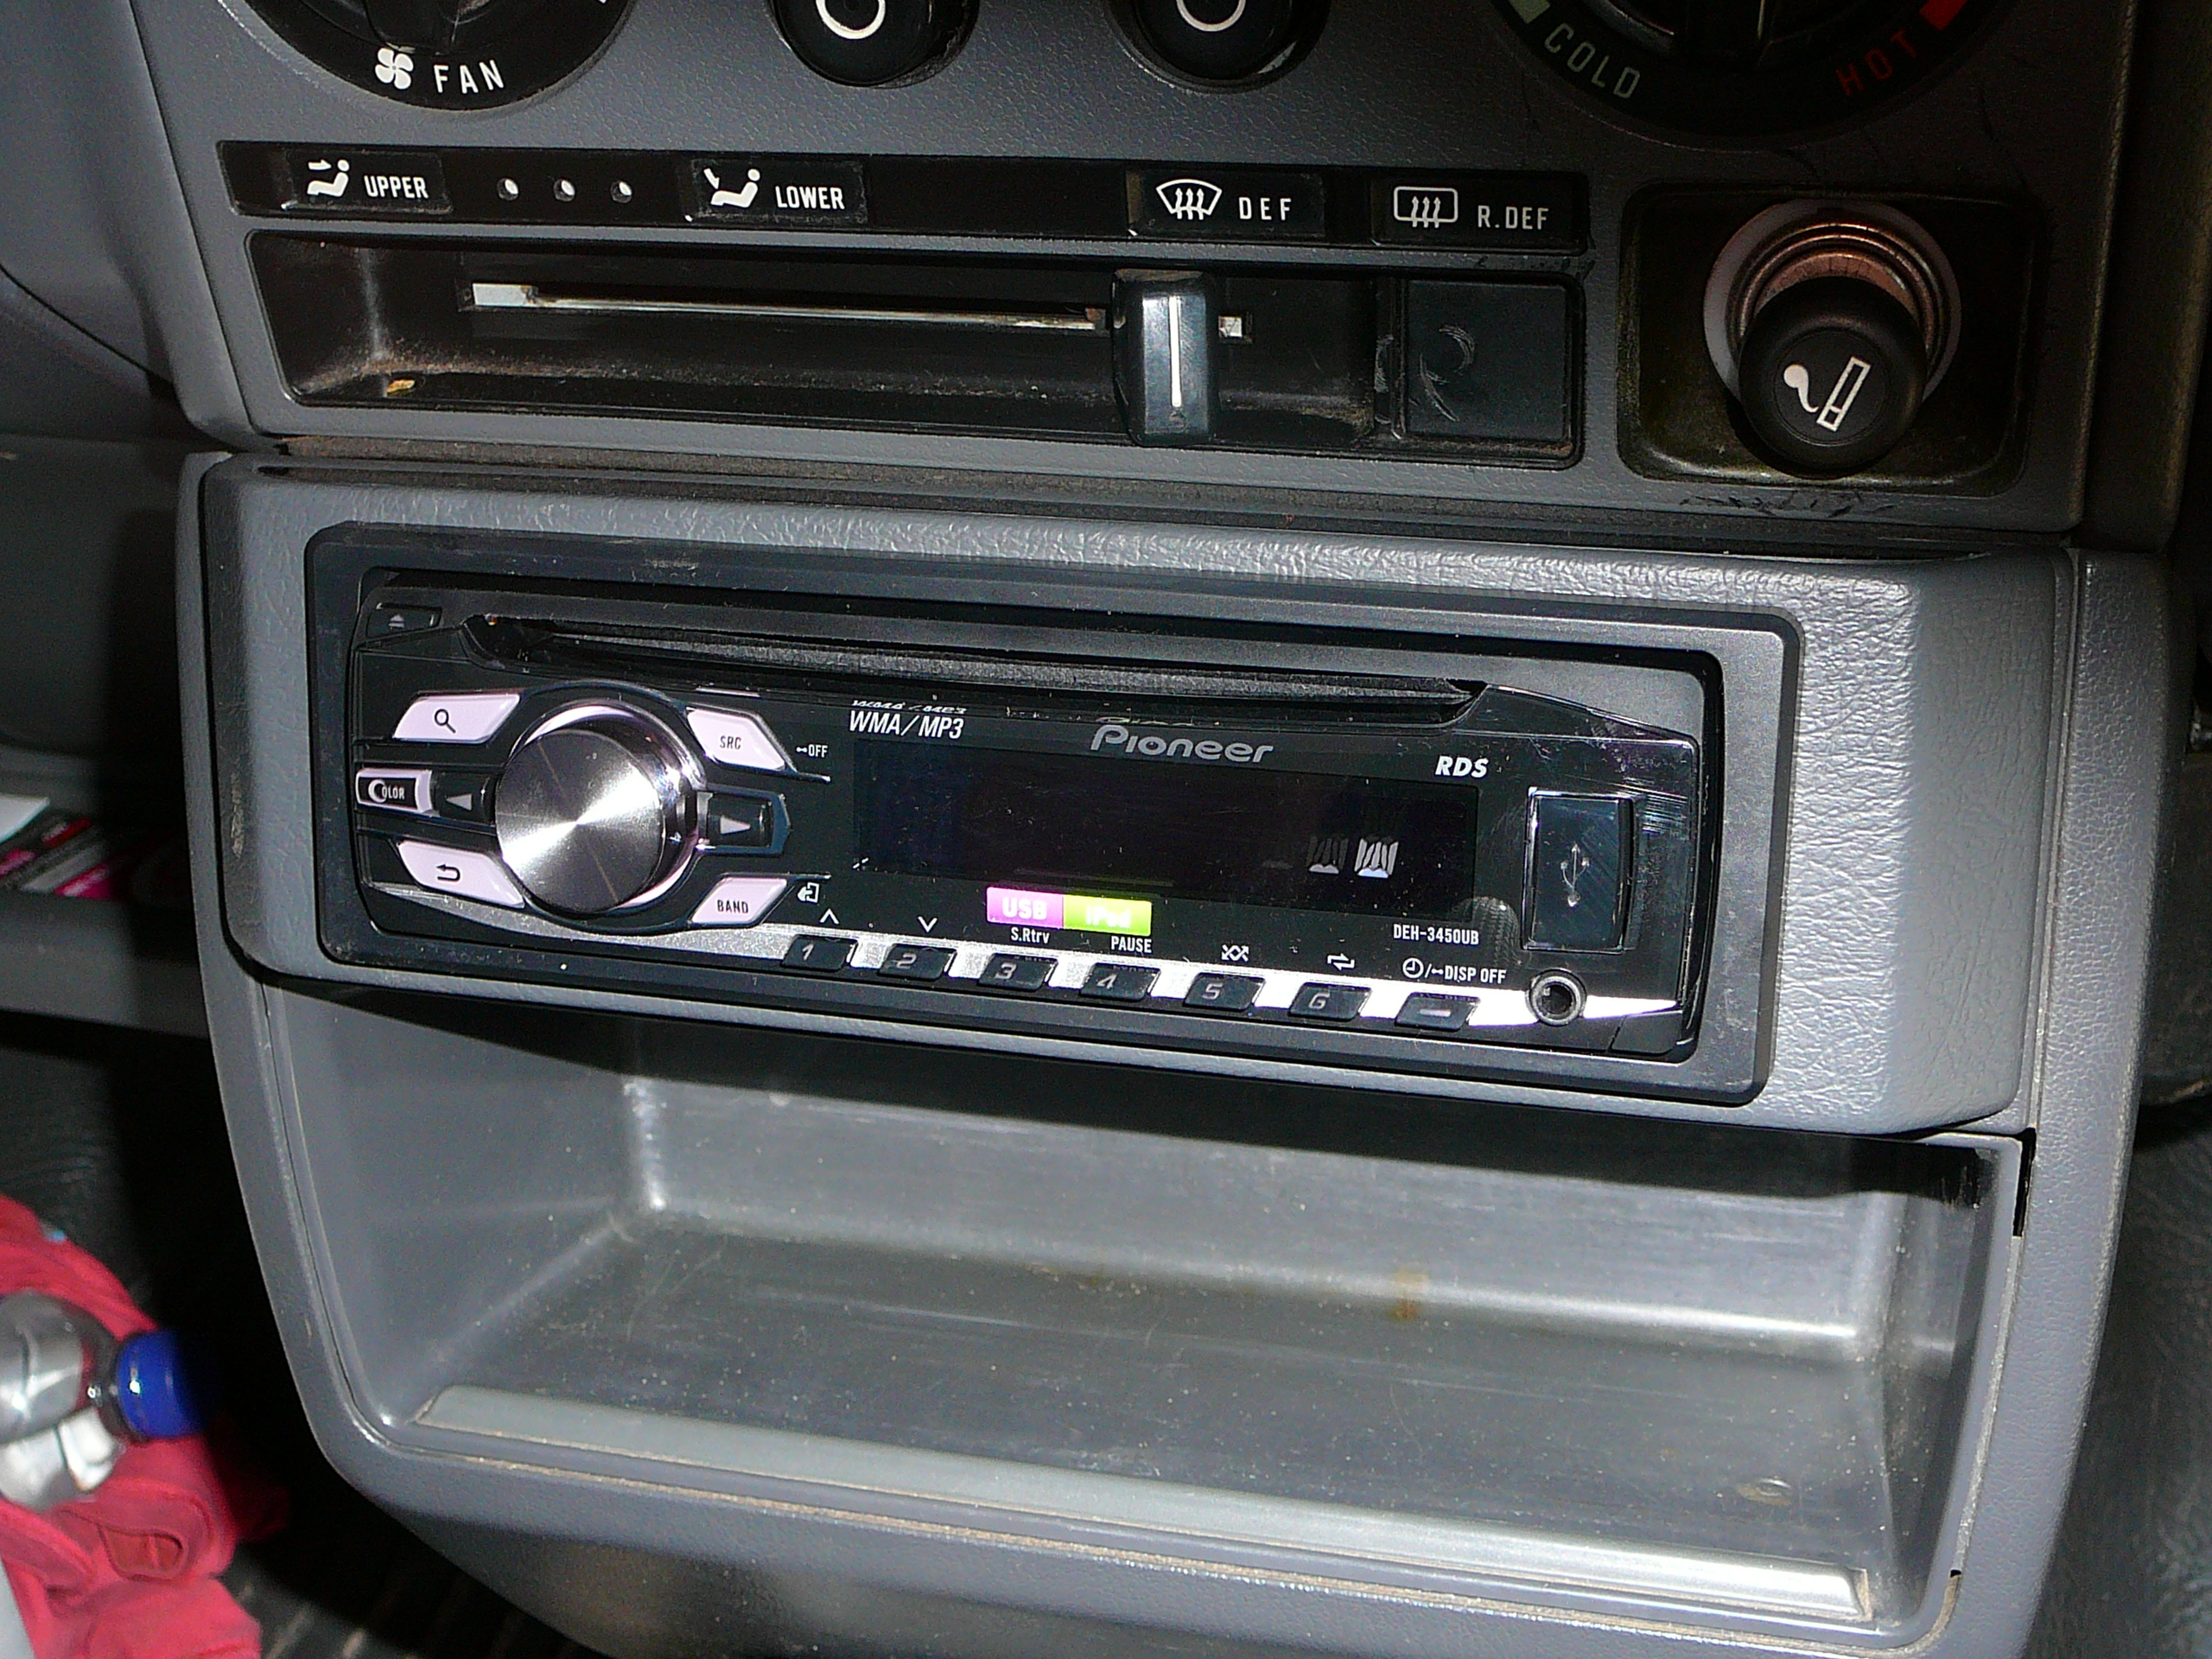 Subaru Brumby, Pioneer CD Radio Headunit and dash kit installation